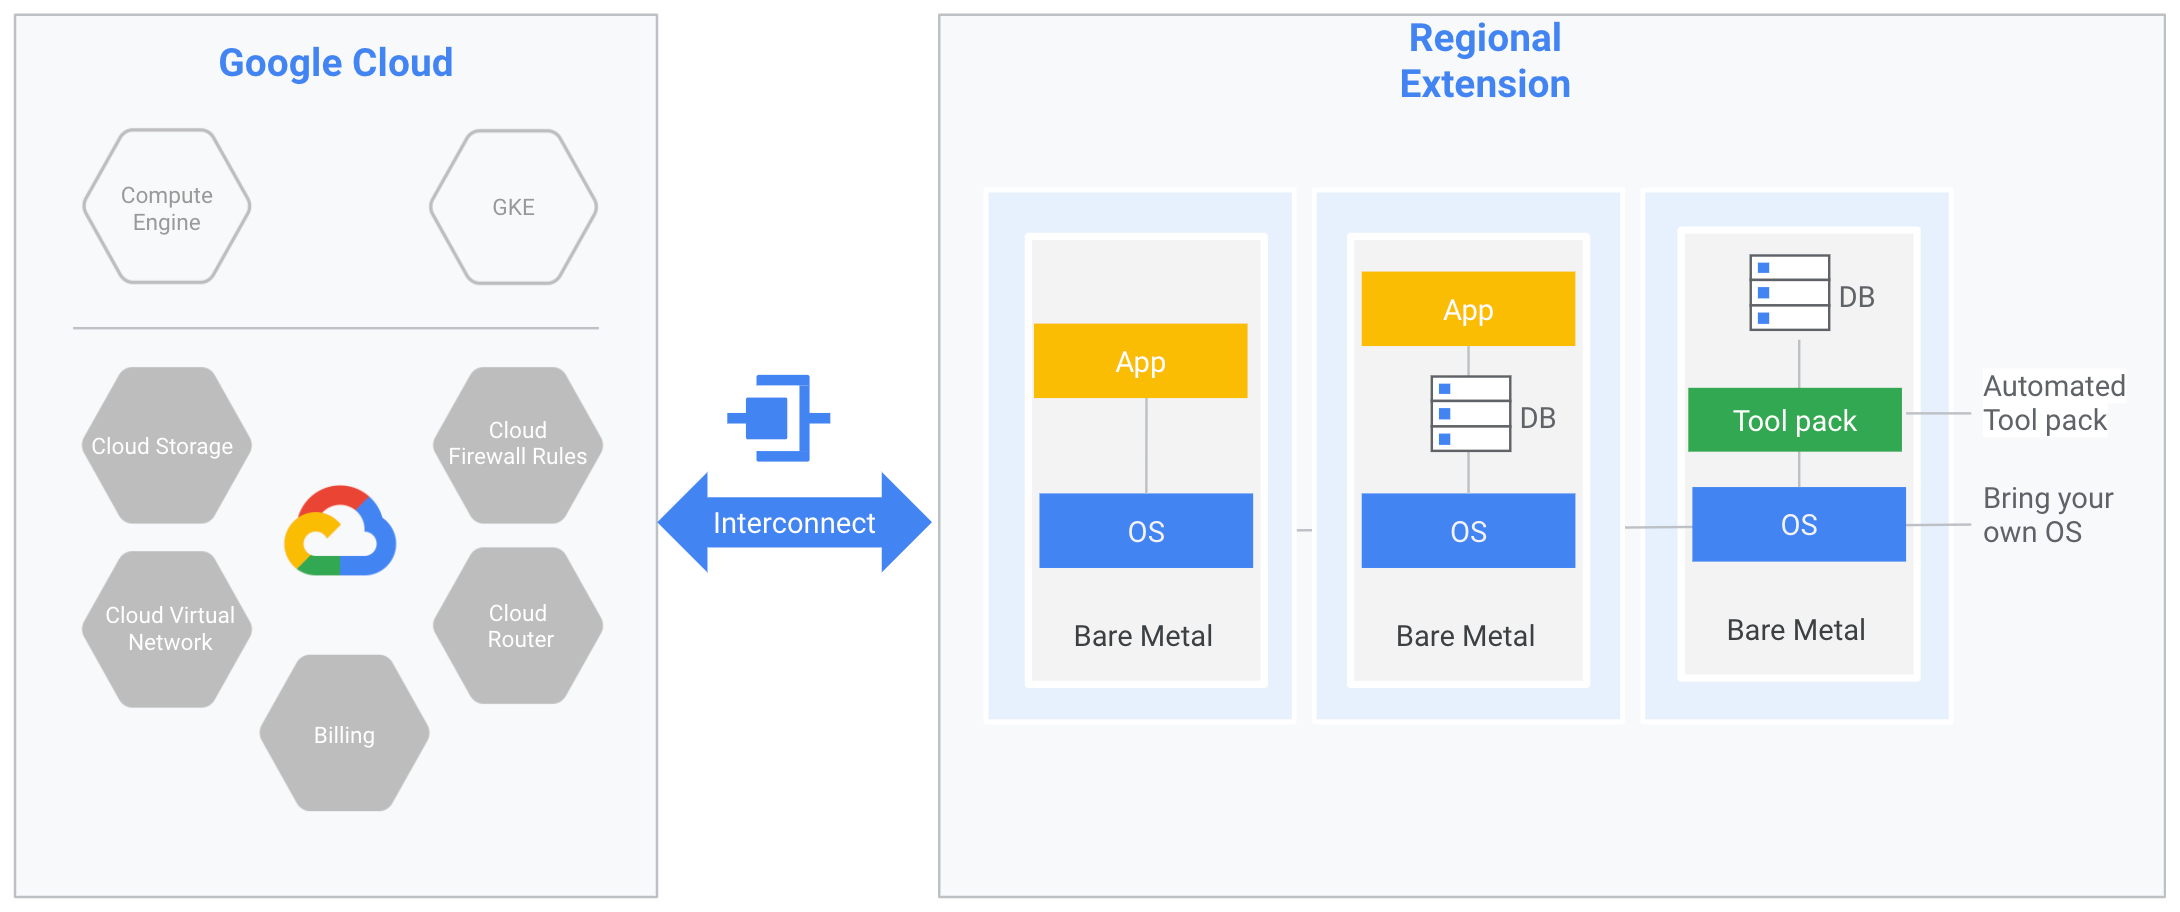 Bare-metal machines are shown in a regional extension that is colocated with a Google Cloud data center